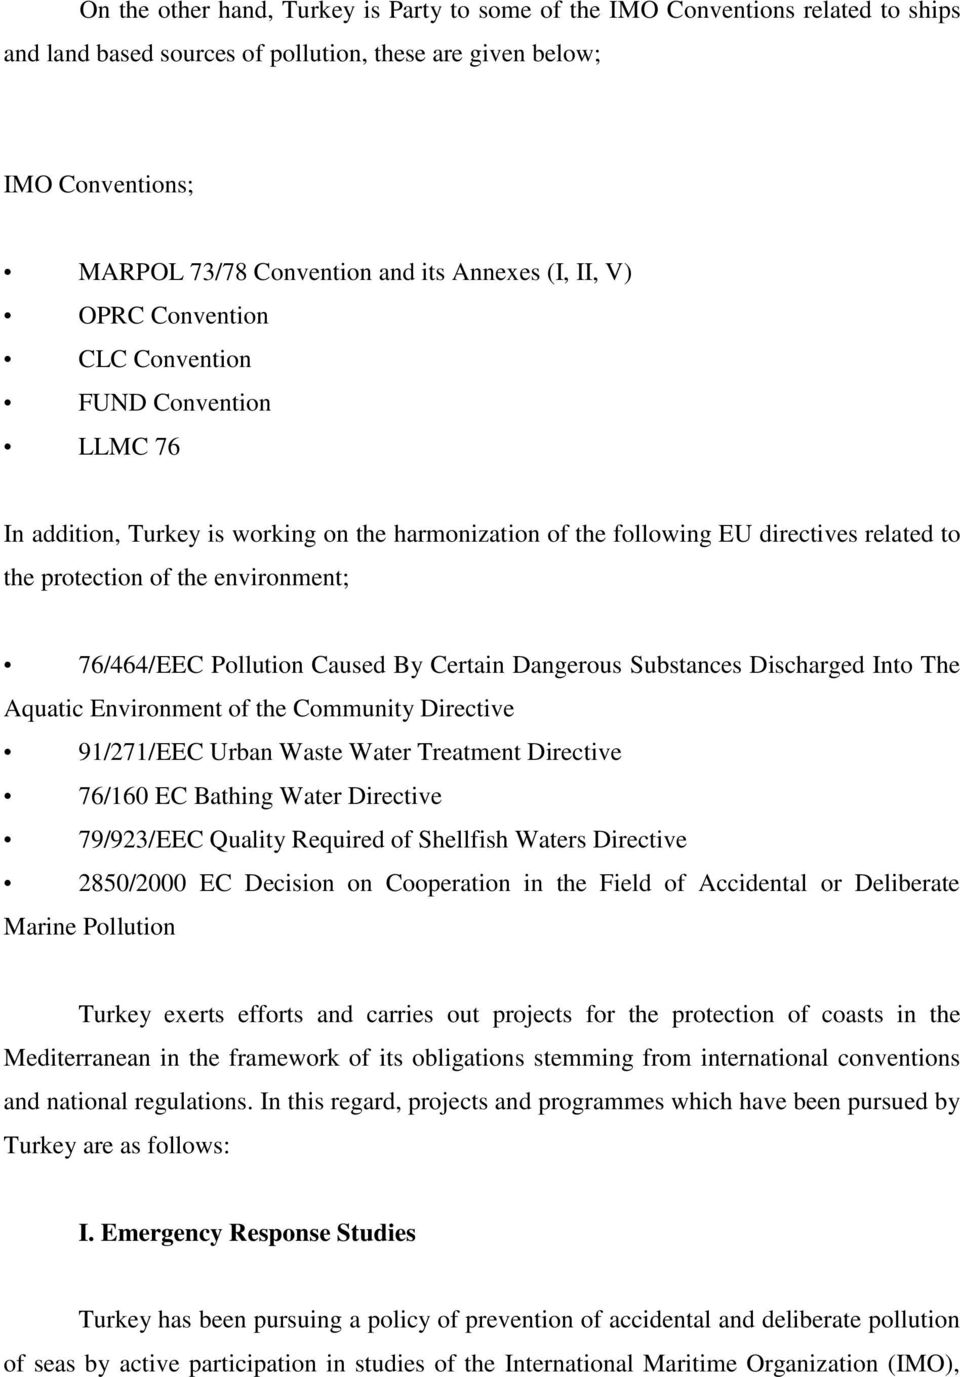 76/464/EEC Pollution Caused By Certain Dangerous Substances Discharged Into The Aquatic Environment of the Community Directive 91/271/EEC Urban Waste Water Treatment Directive 76/160 EC Bathing Water